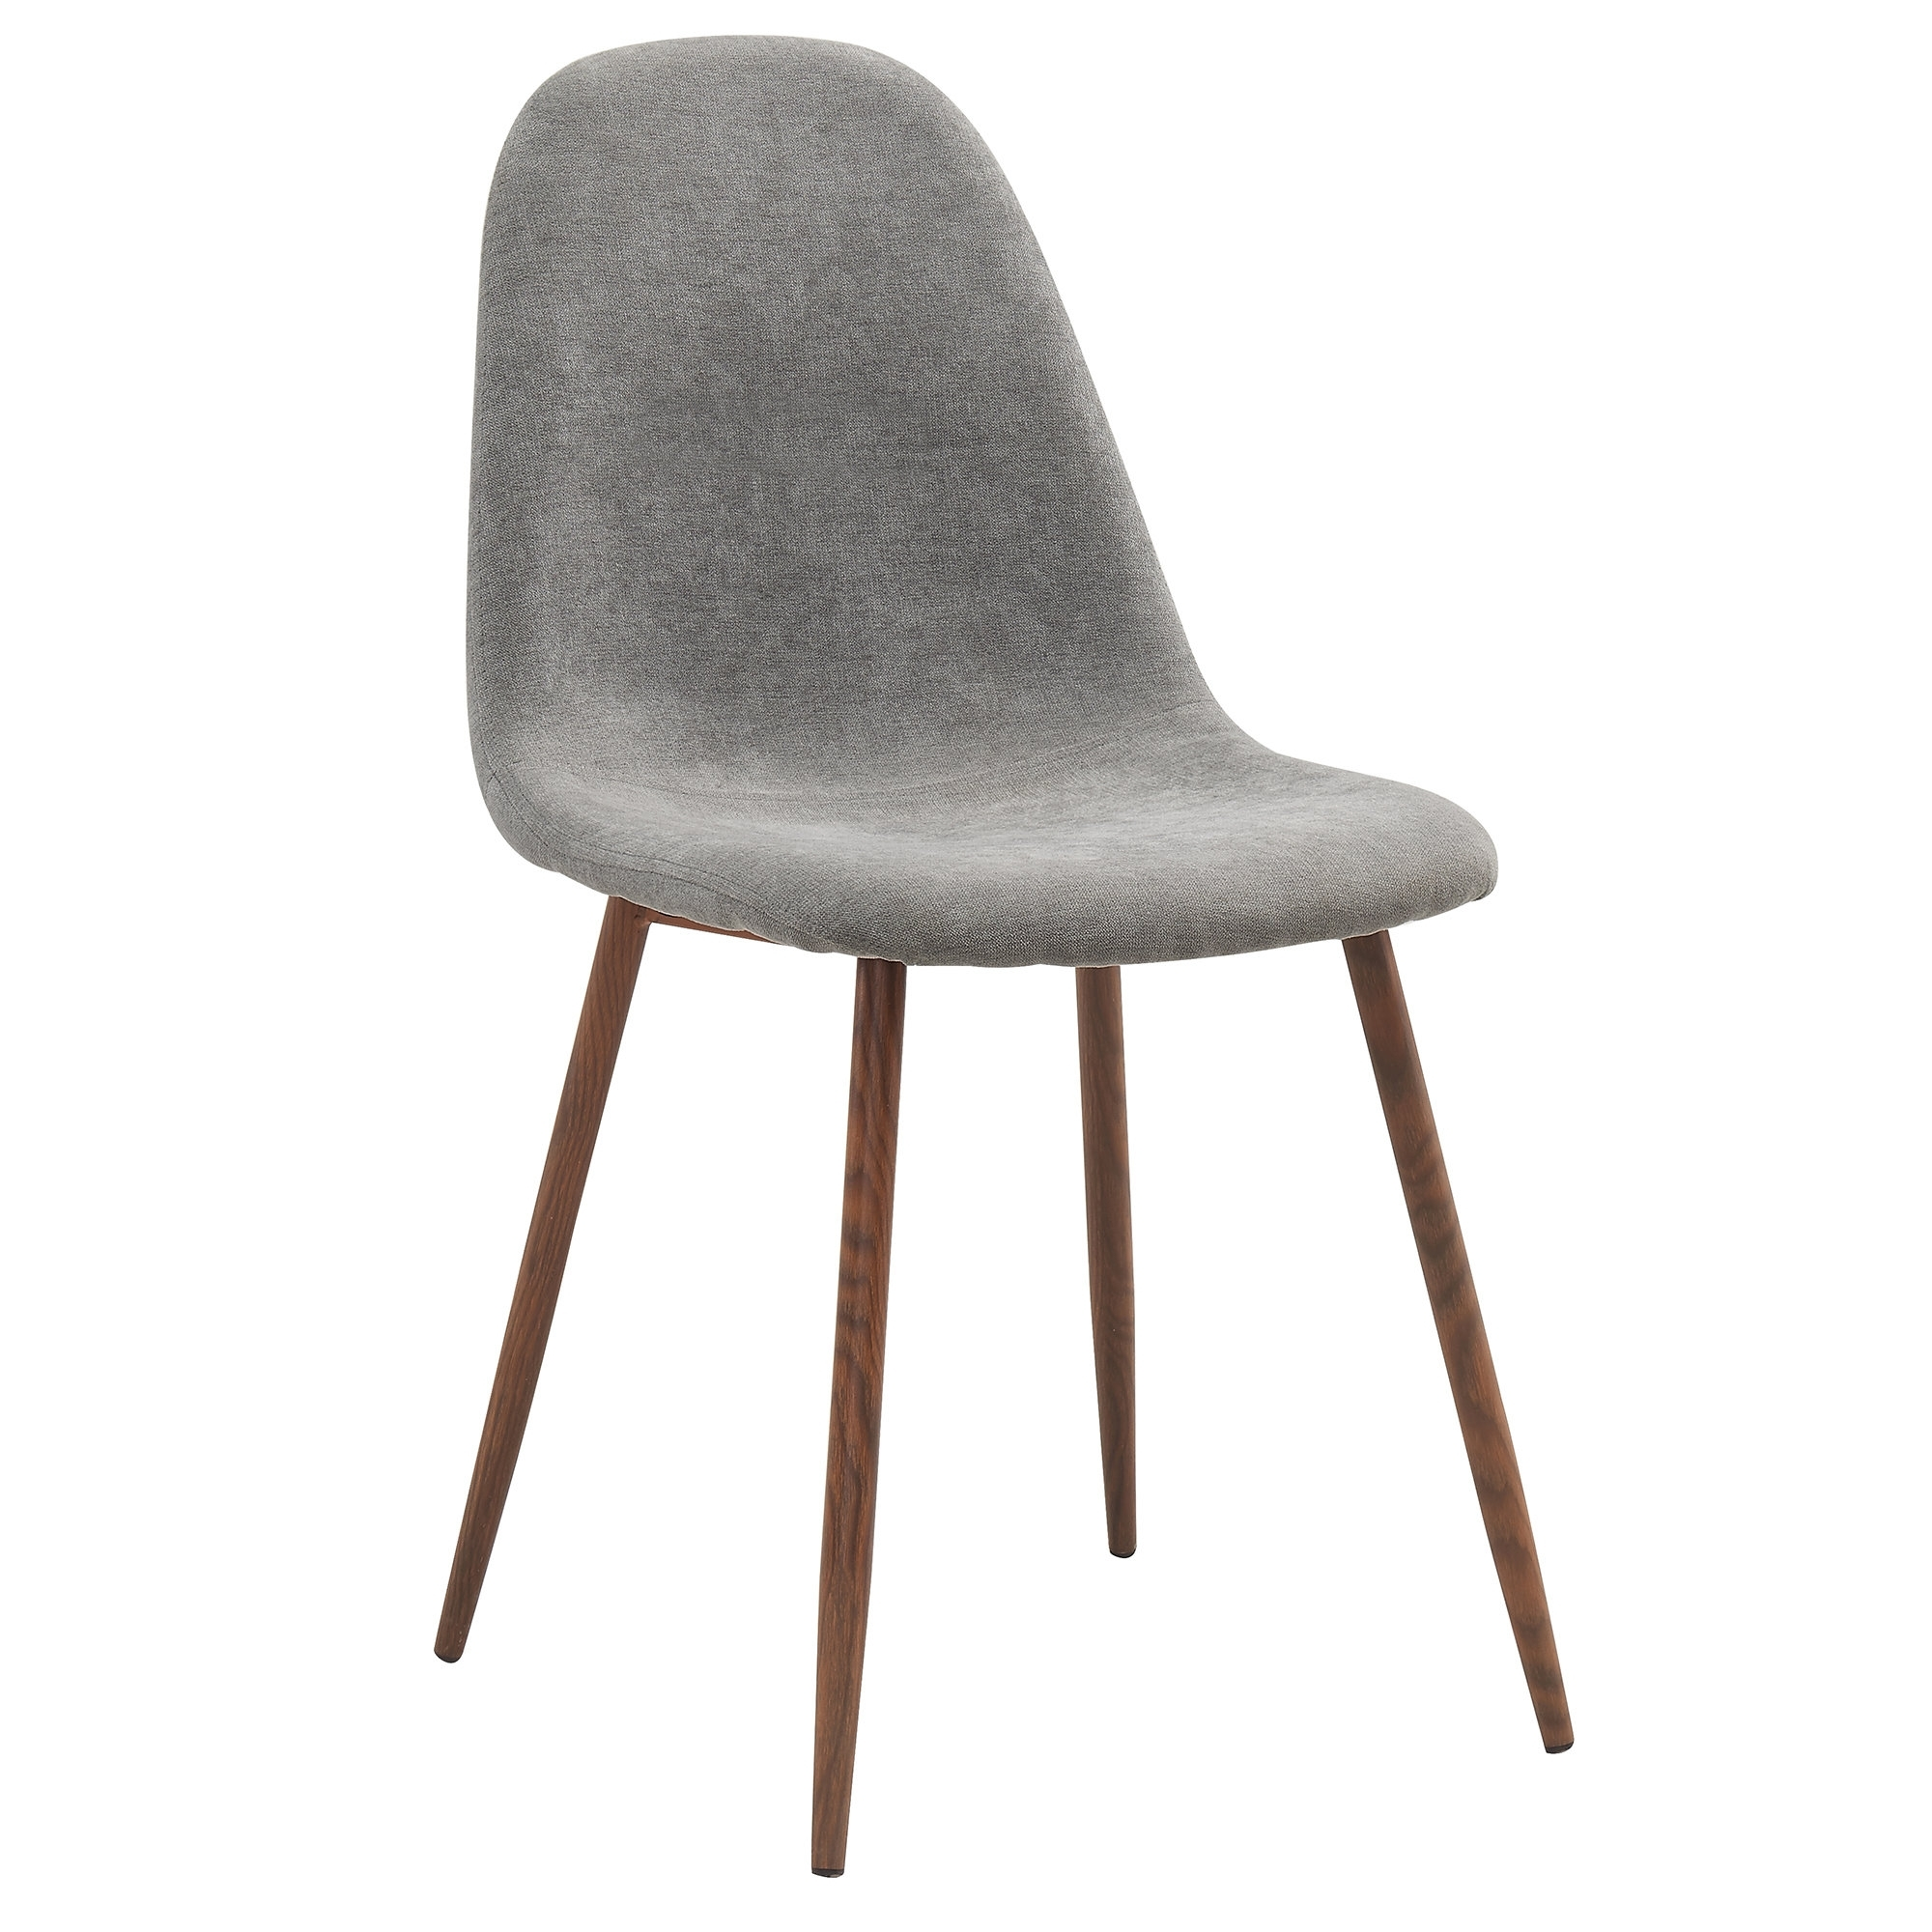 Wade Logan Folsom Upholstered Dining Chair & Reviews (#15 of 20)